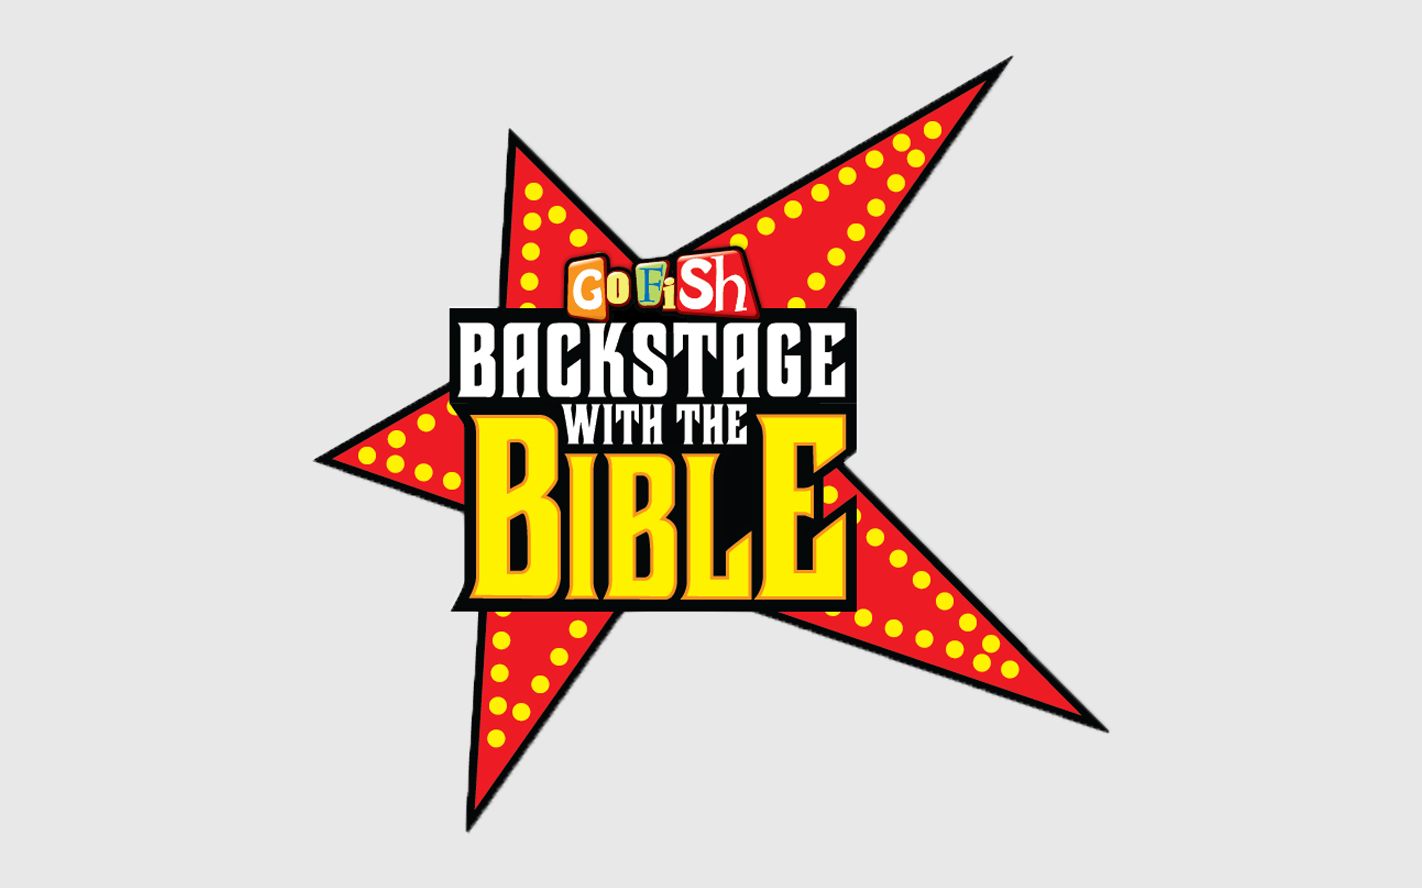 Backstage with the Bible - Learn more